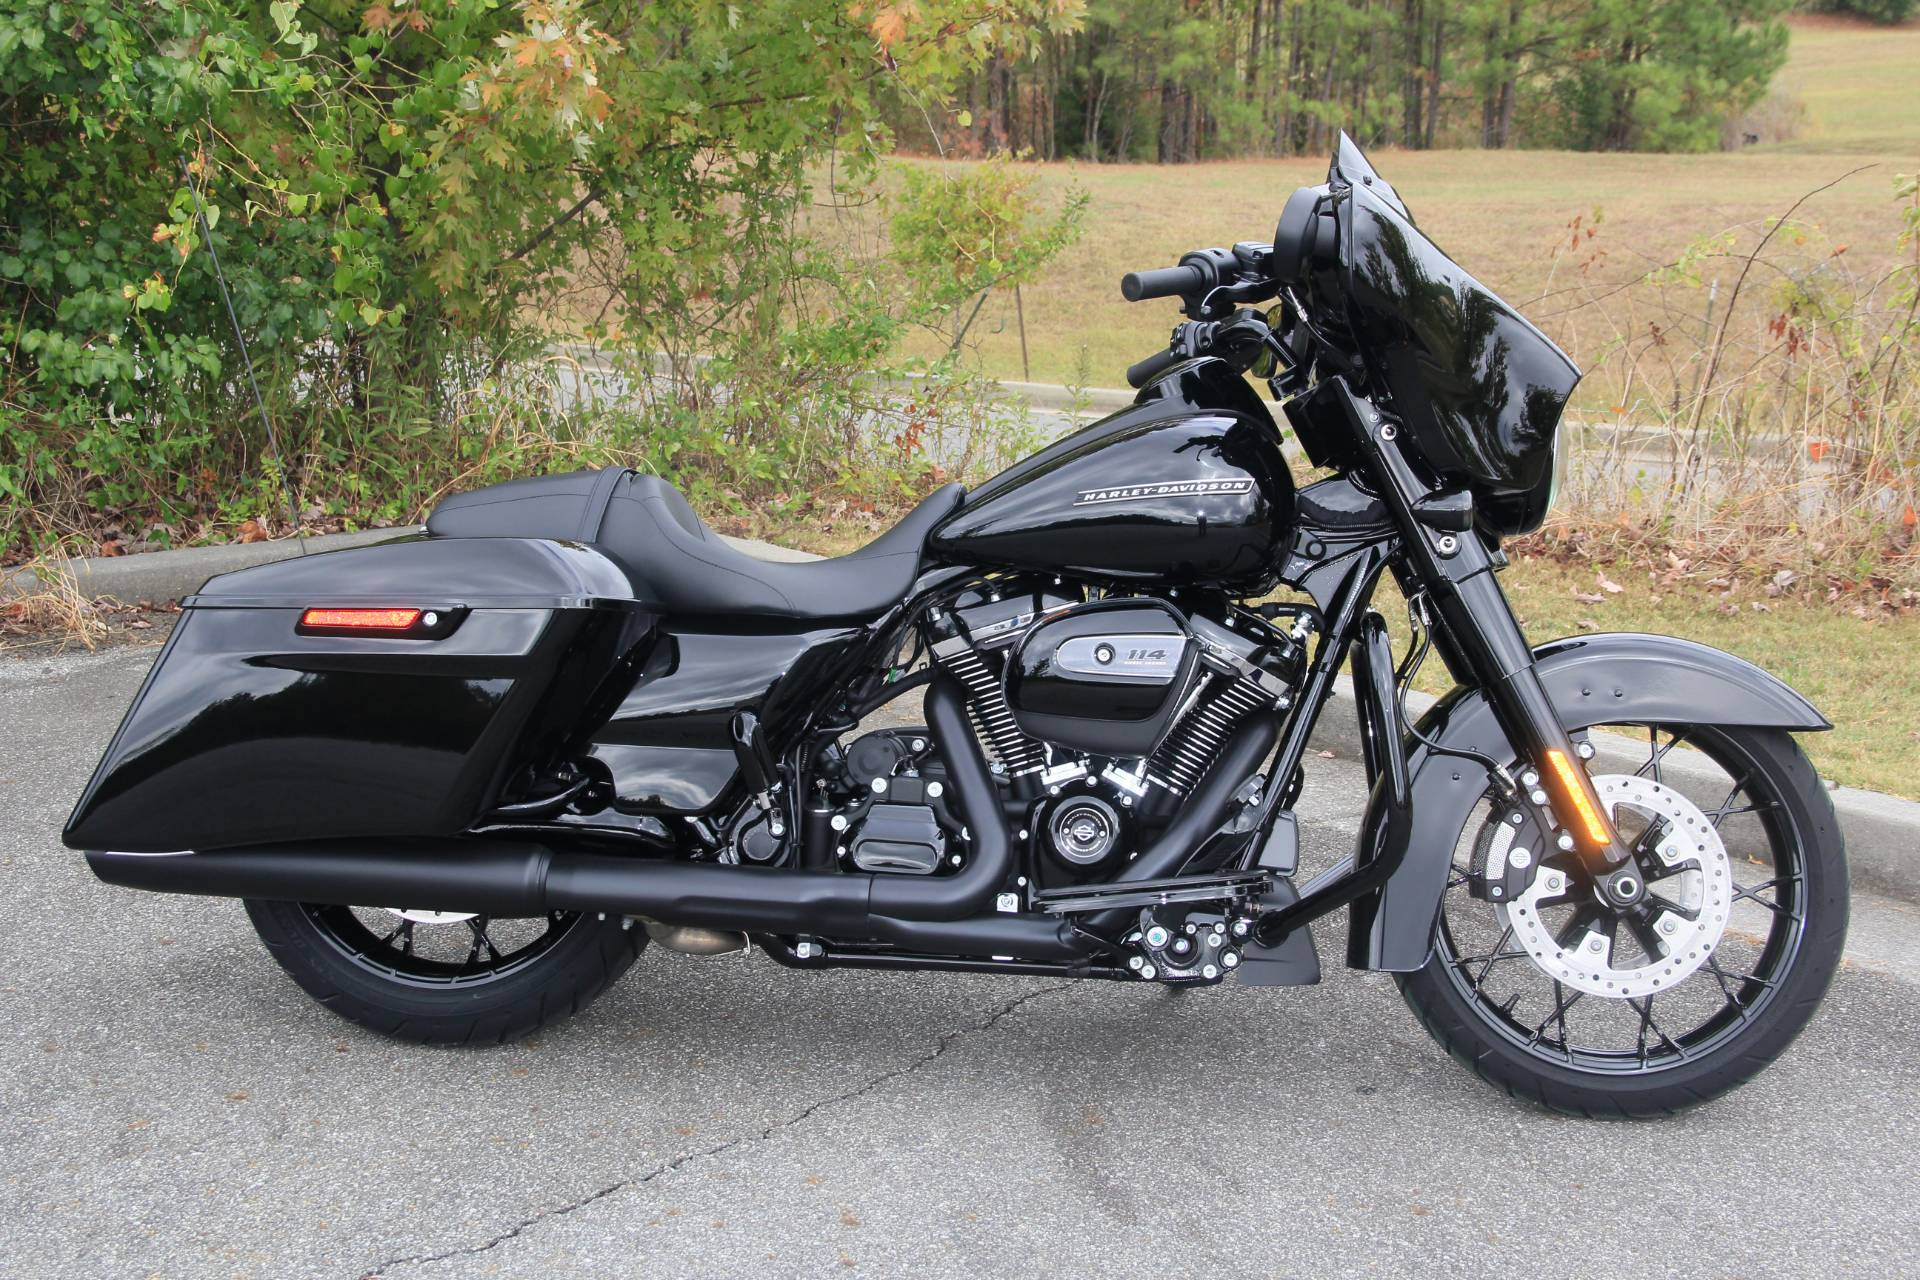 2020 Harley-Davidson Street Glide Special in Cartersville, Georgia - Photo 2